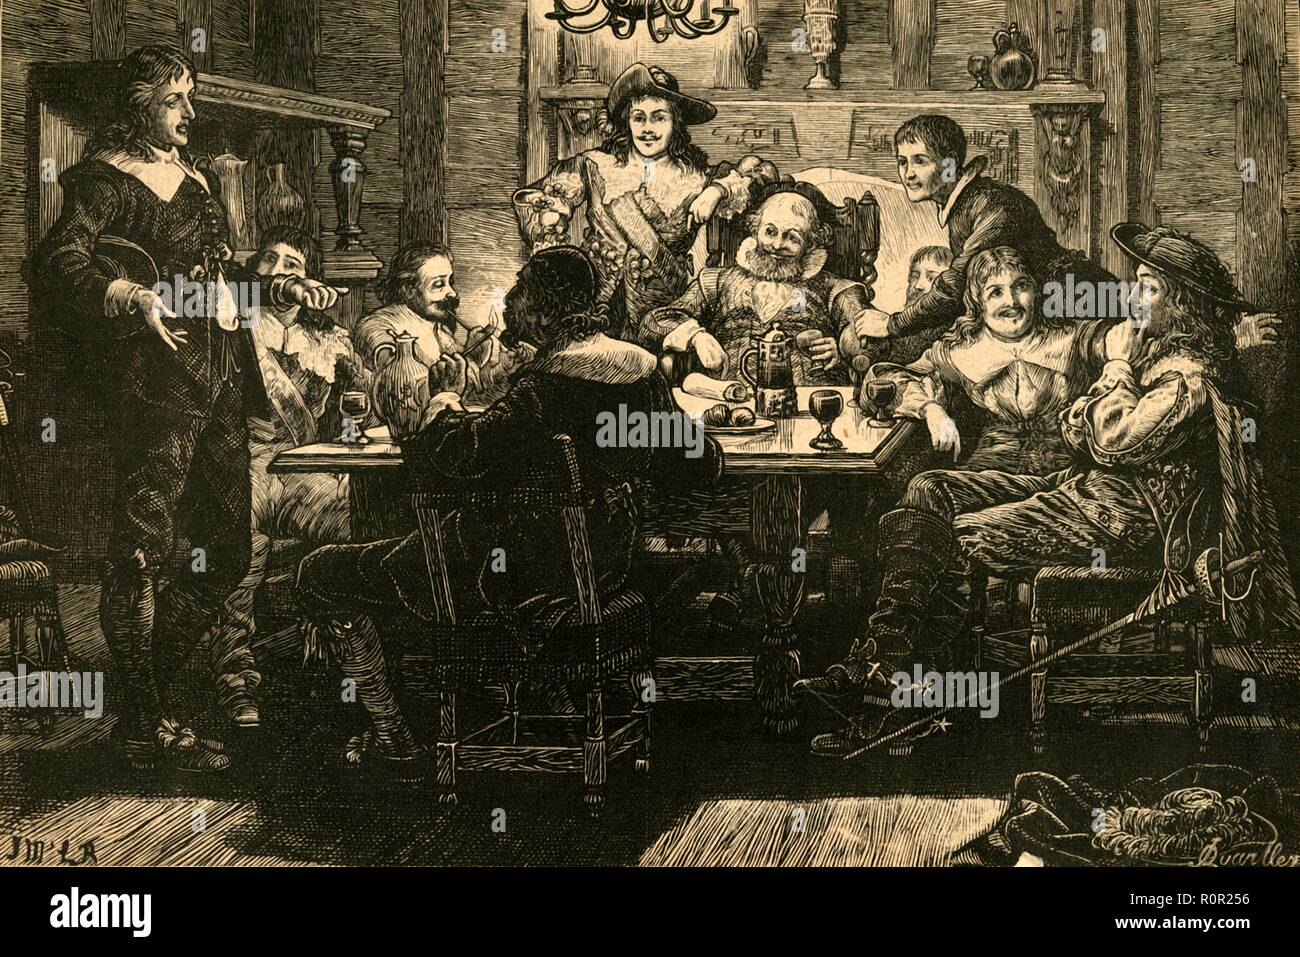 'Introduction of Randolph to Ben Jonson at the Devil Tavern', (1897). 19th century depiction of poet Thomas Randolph (1605-1635) meeting playwright, actor and literary critic Ben Jonson in the Devil and Saint Dunstan tavern near Temple Bar in London. From Old and New London, Volume I, by Walter Thornbury. [Cassell and Company, Limited, London, Paris & Melbourne, 1897] From Old and New London, Volume I, by Walter Thornbury. [Cassell and Company, Limited, London, Paris & Melbourne, 1897] - Stock Image